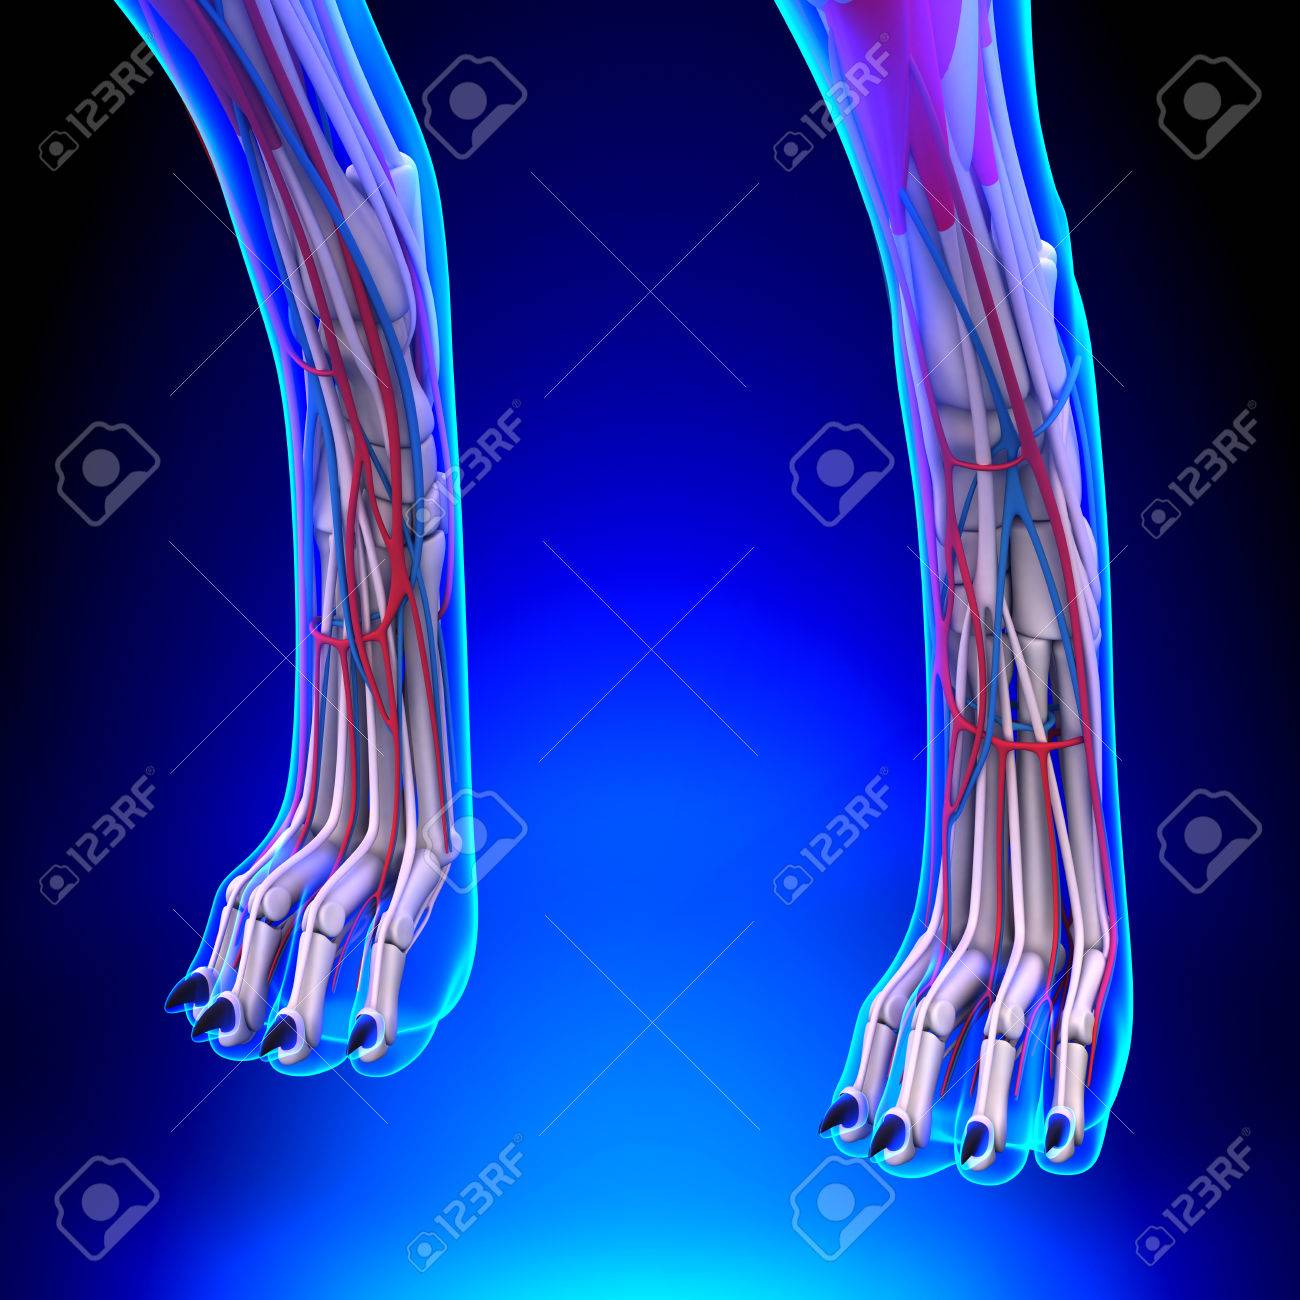 Dog Hind Legs Anatomy With Circulatory System Stock Photo, Picture ...